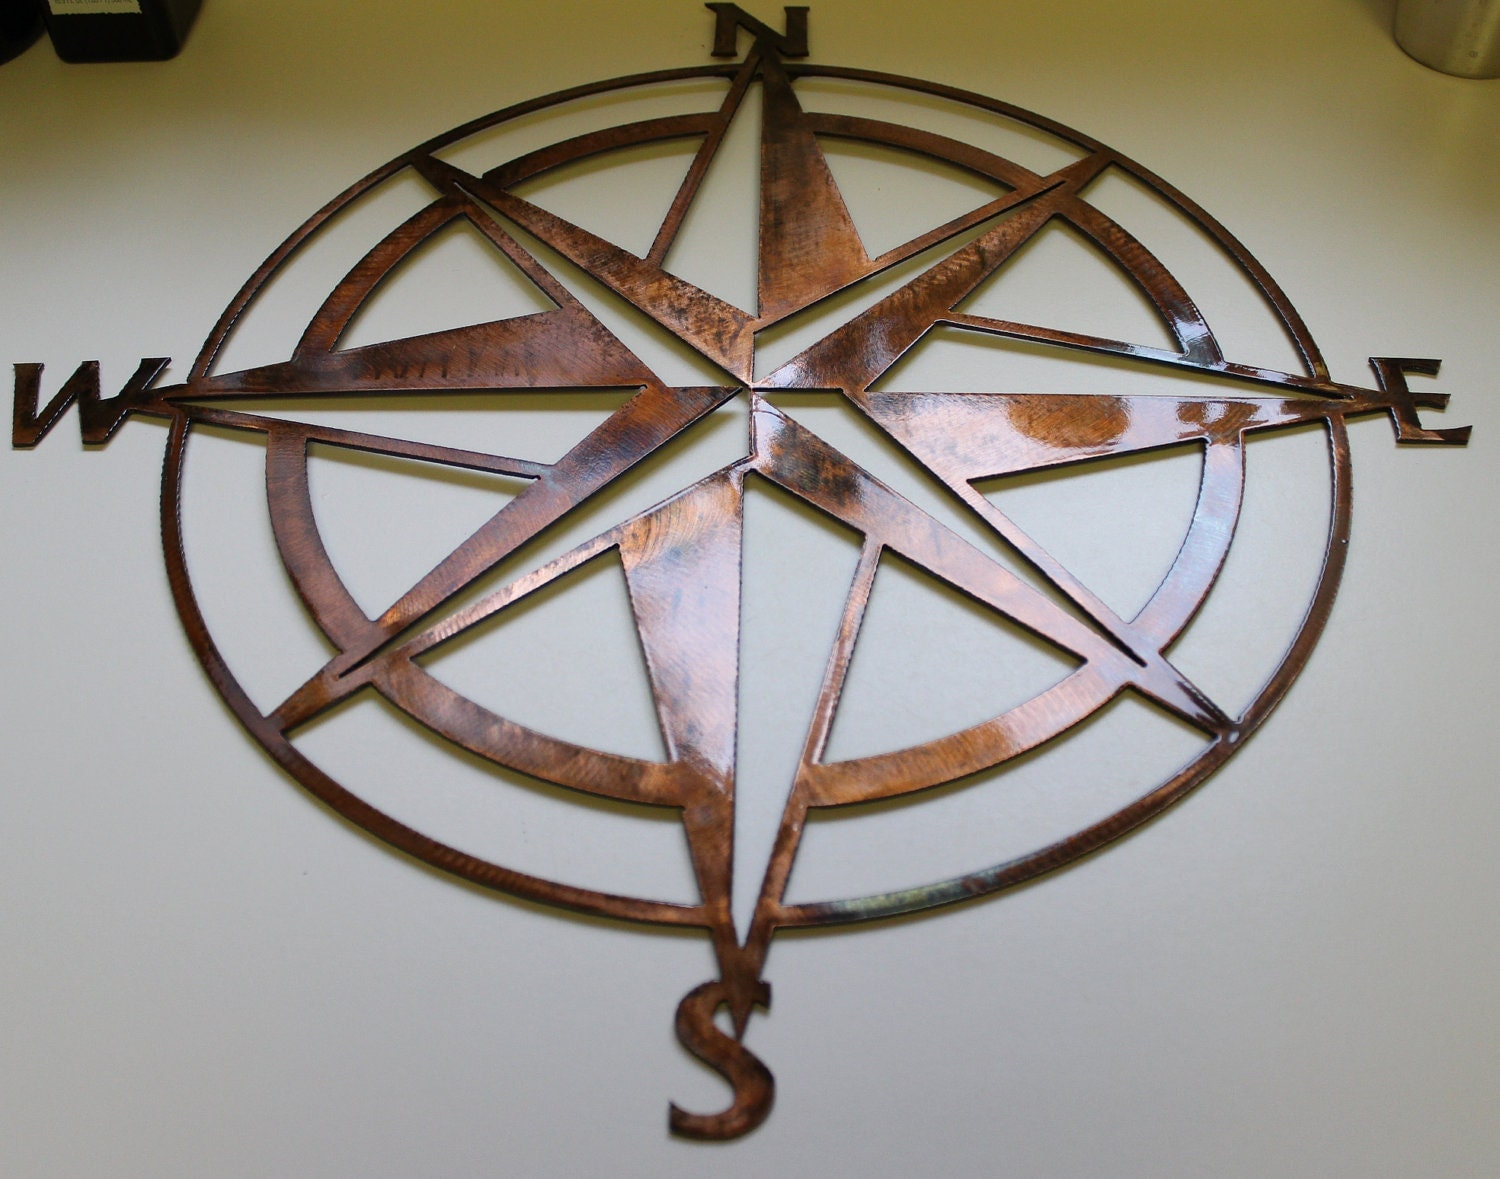 Outdoor Wall Decor Nautical : Nautical compass rose wall art metal decor by